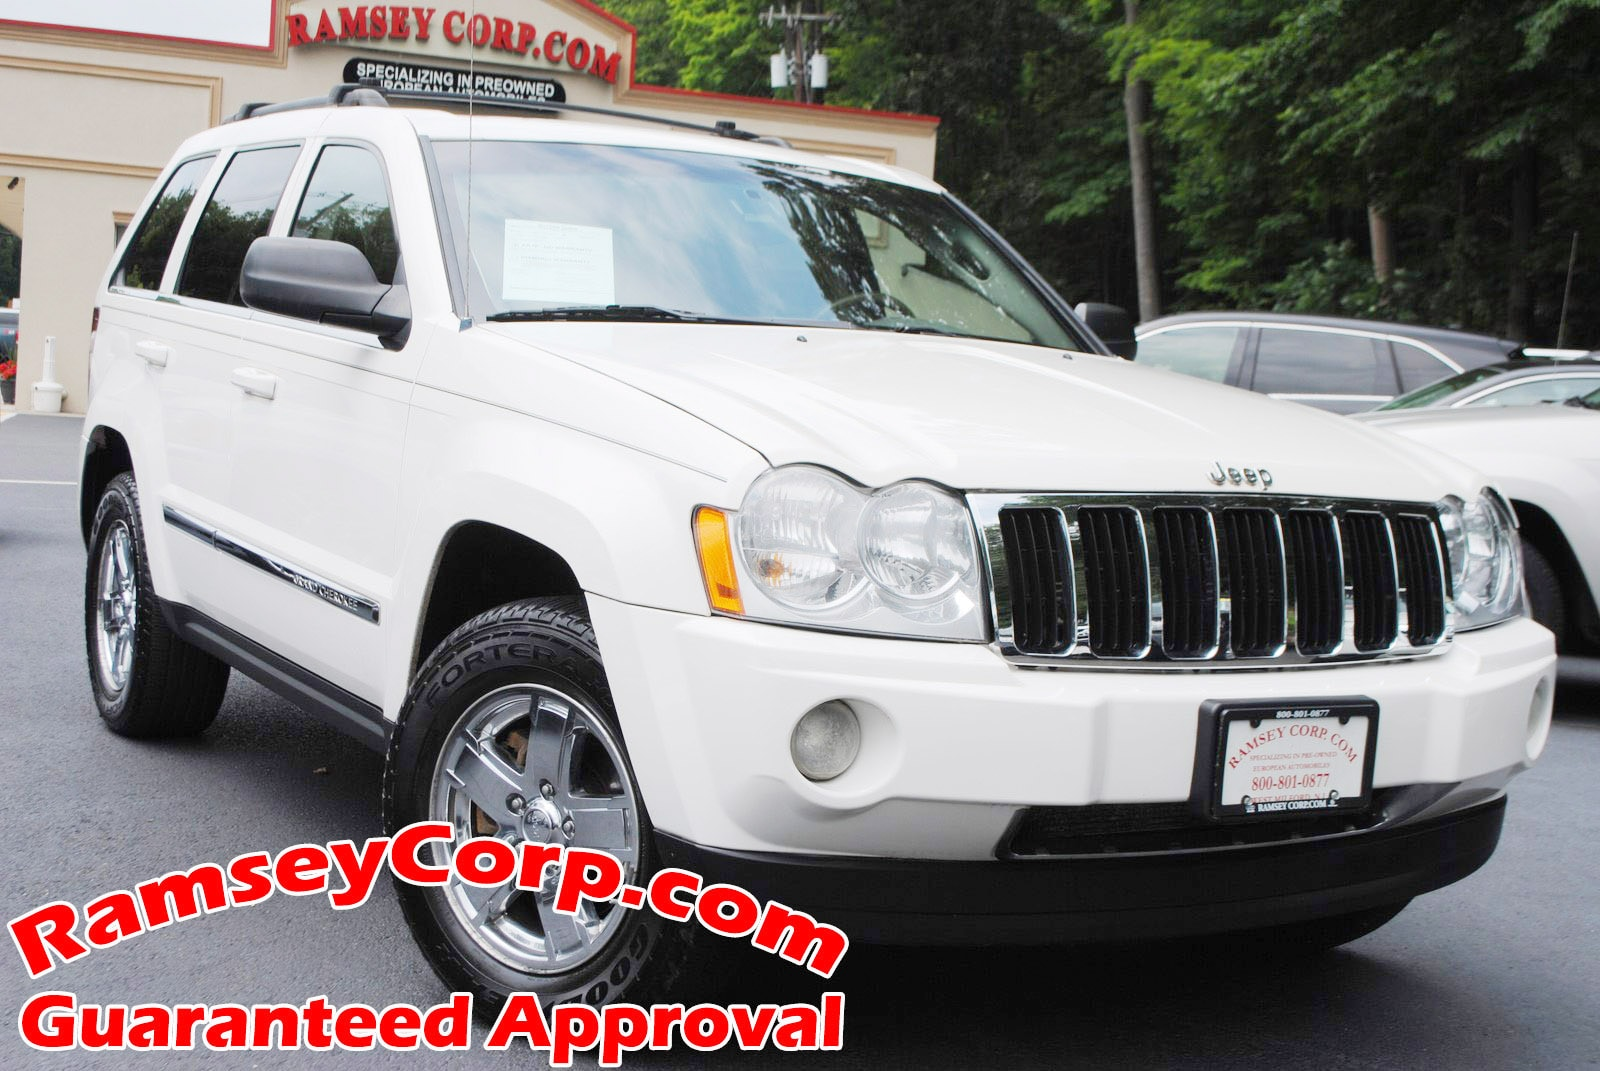 2005 Jeep Grand Cherokee Limited 4.7 SUV